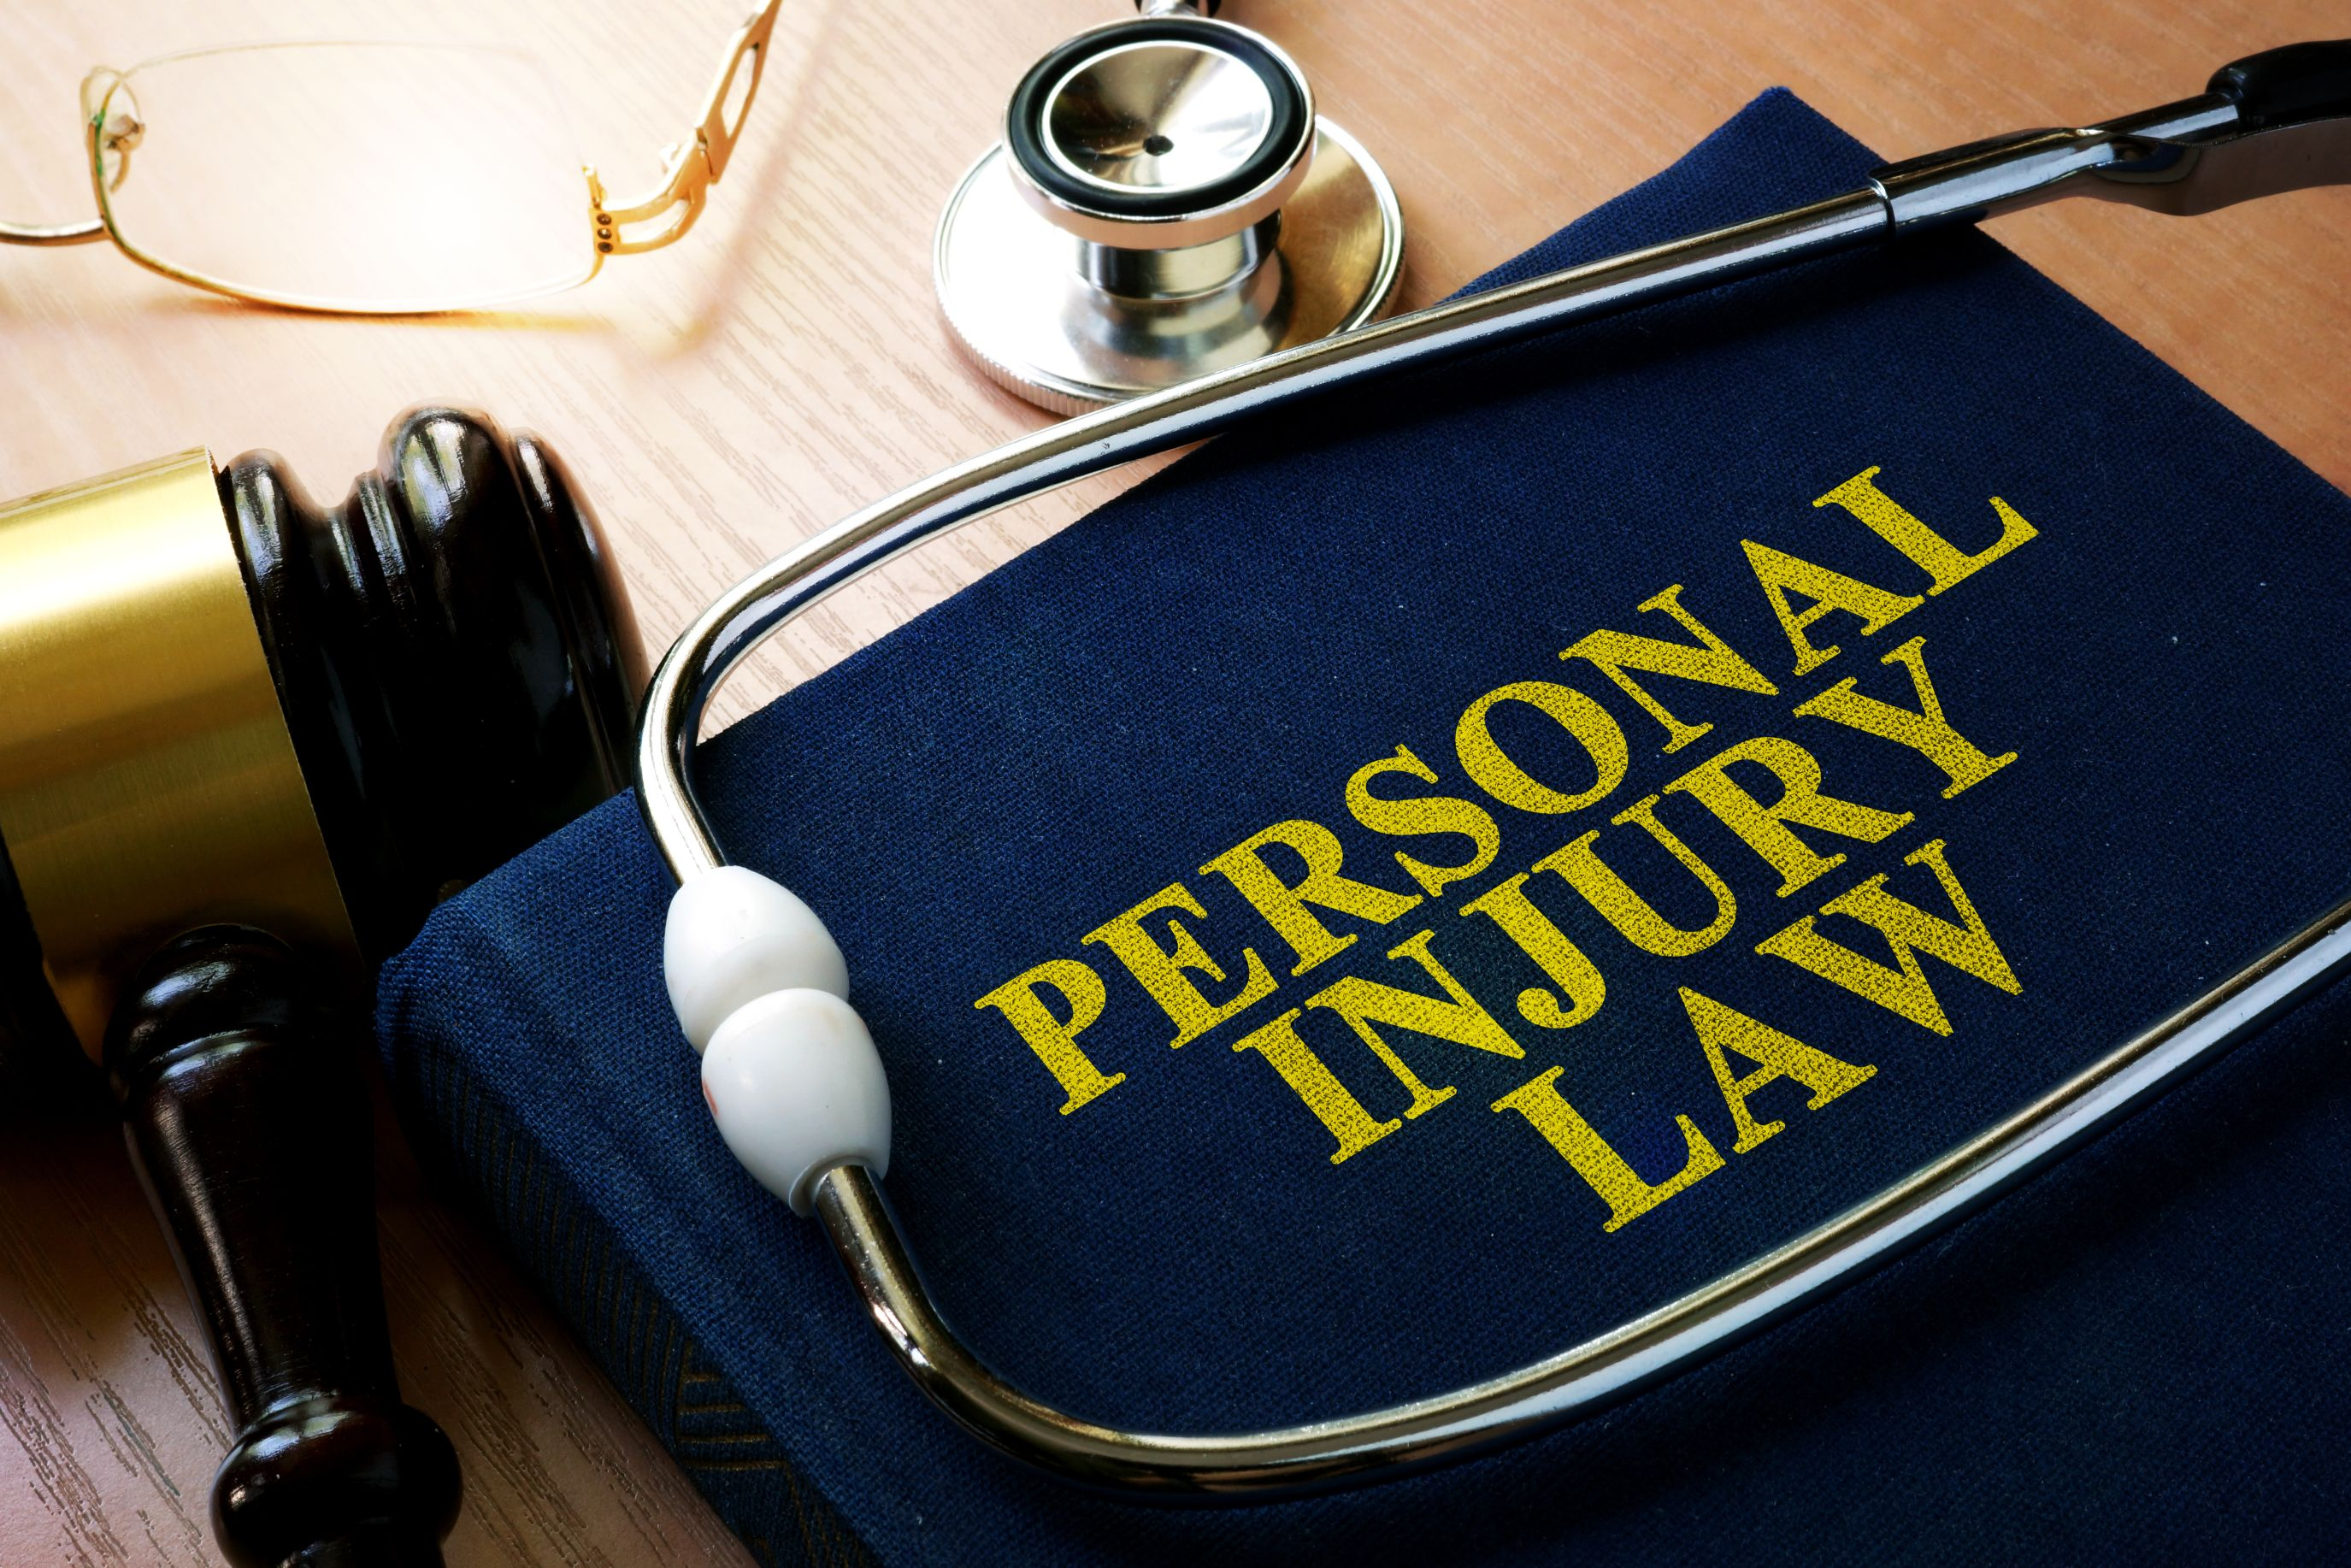 Attorneys & Lawyers - Personal Injury & Property Damage